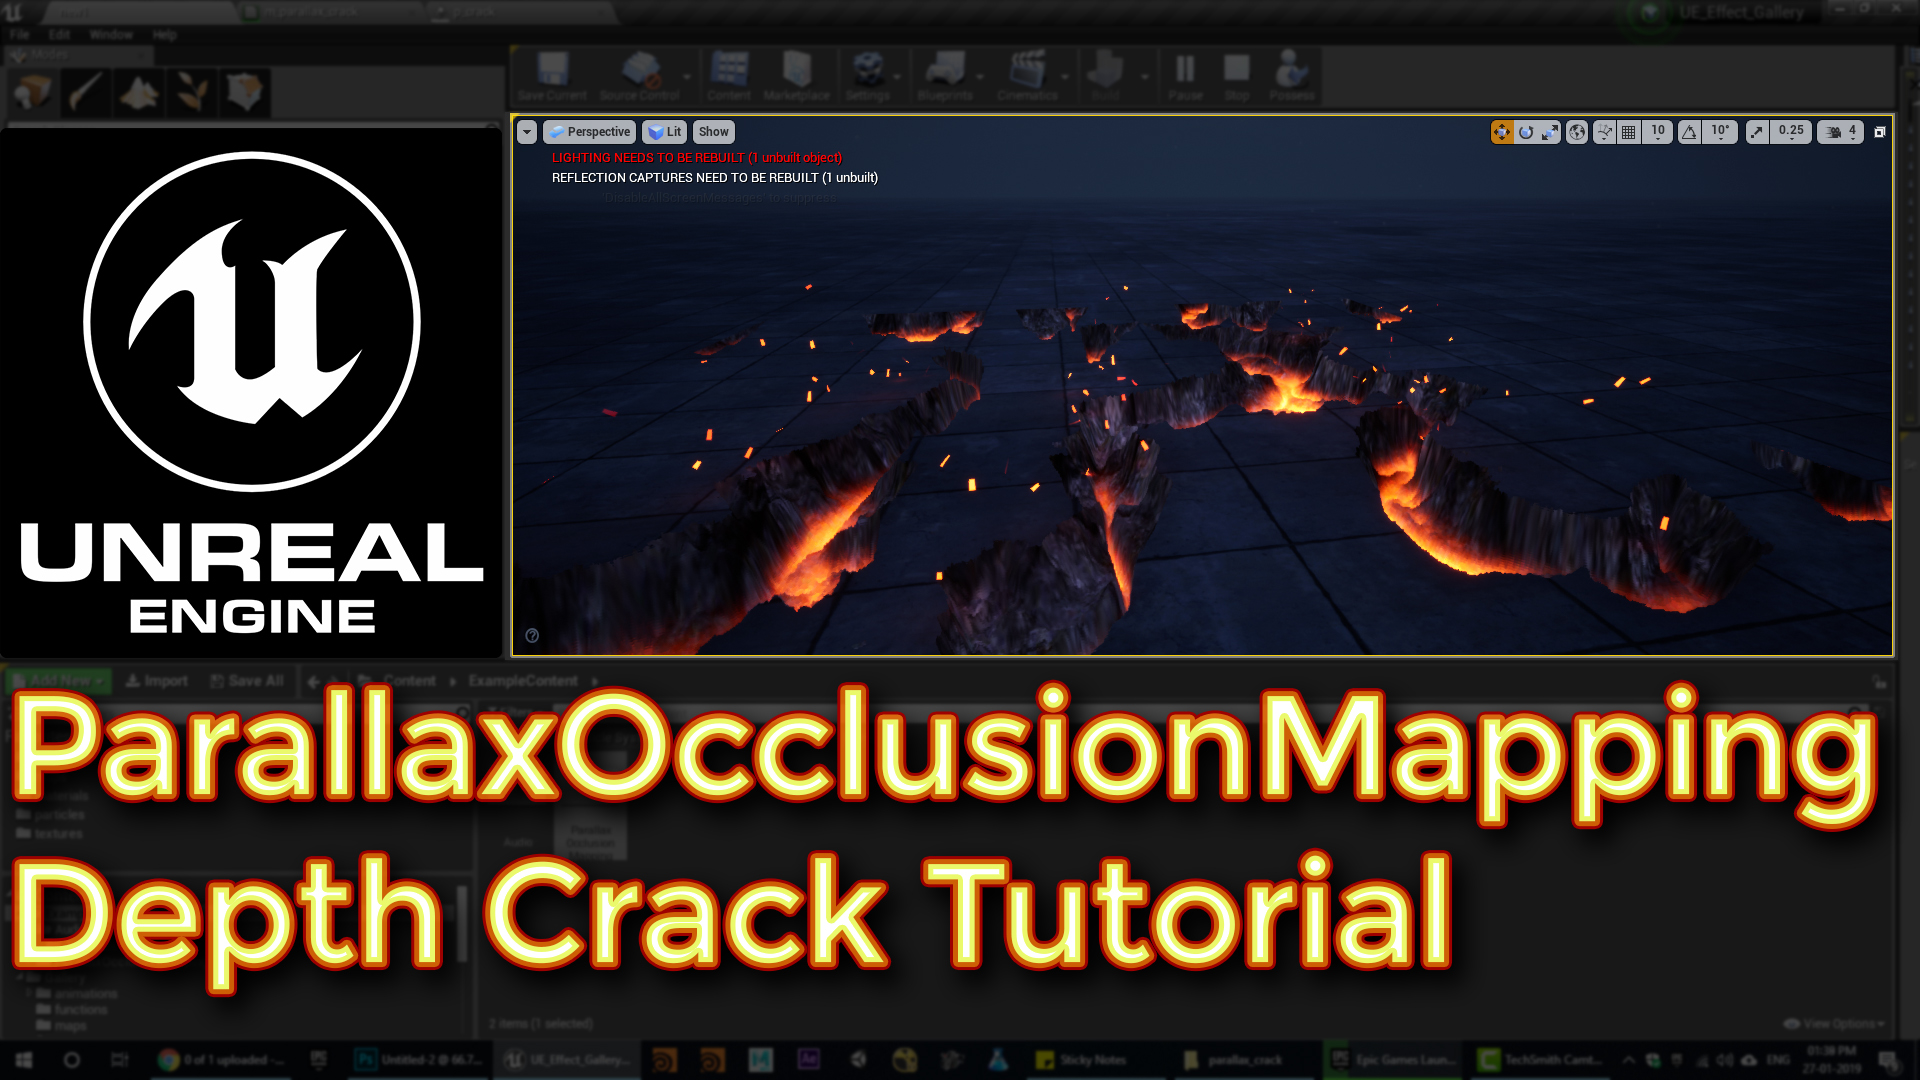 Unreal engine ParallaxOcclusionMapping Depth Crack Tutorial